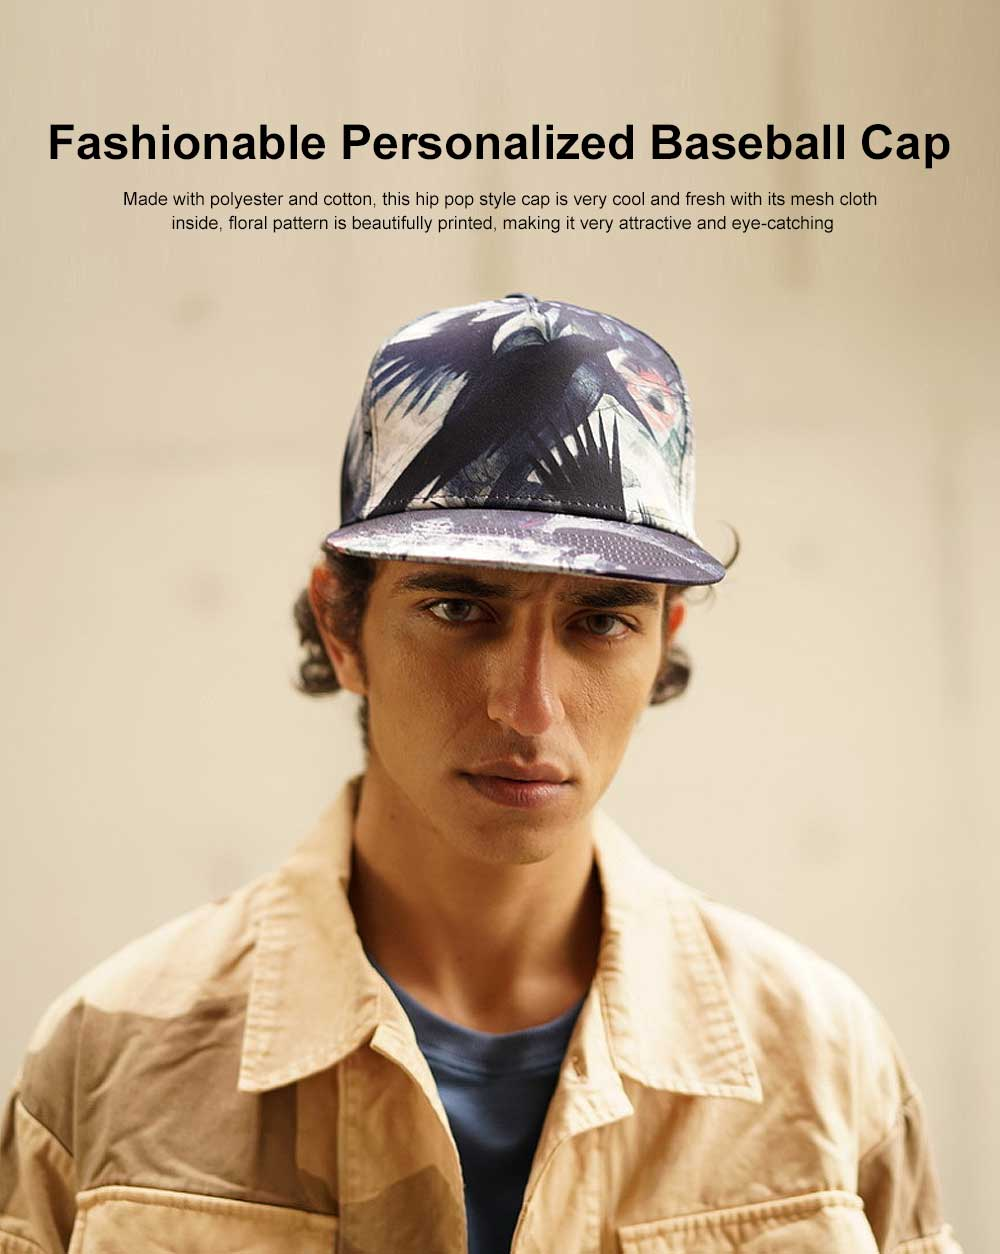 New Flat Hip Pop Style Men Cap Urban Fashionable Personalized Baseball Cap with Adjustable Strap 0